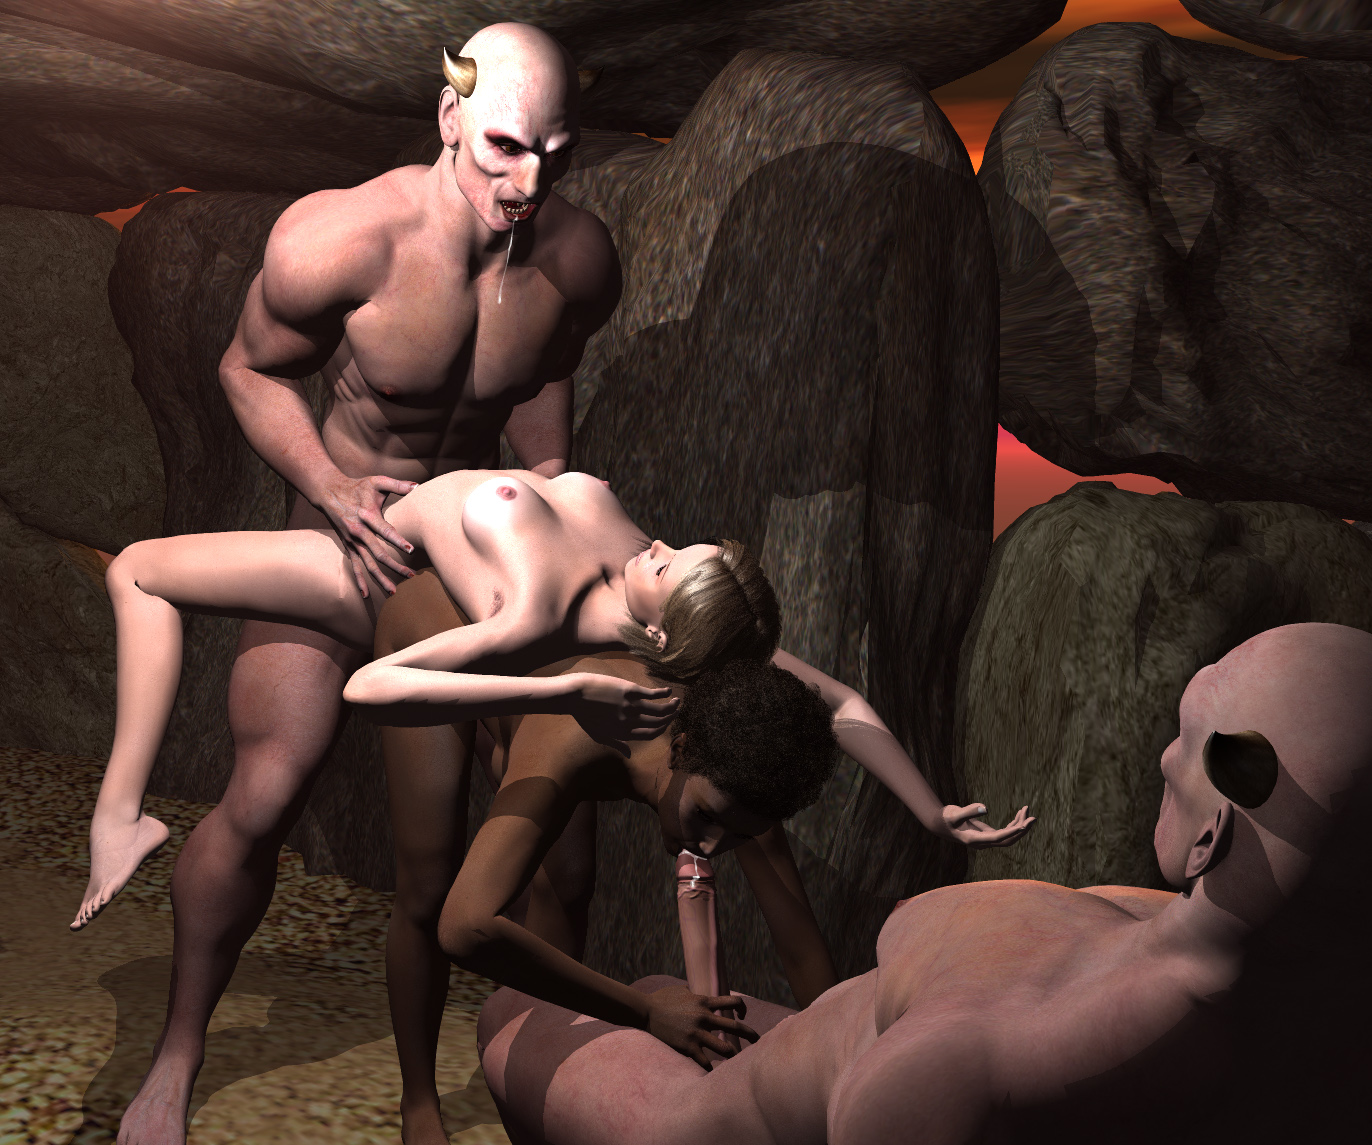 Sex scene from monster's dungeon naked video